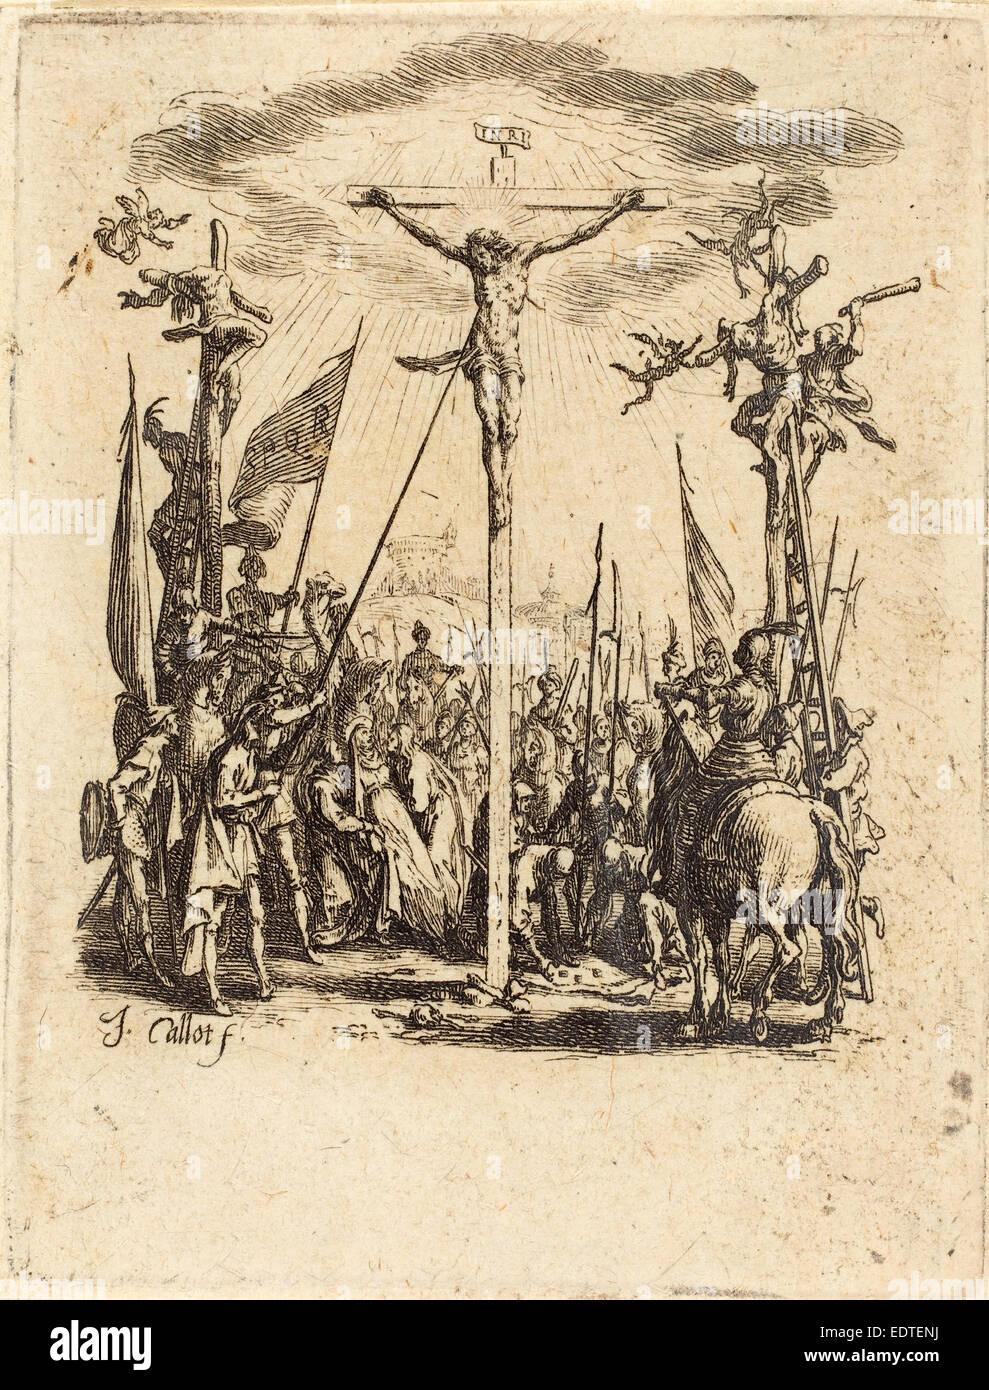 Jacques Callot (French, 1592 - 1635), The Crucifixion, c. 1624-1625, etching